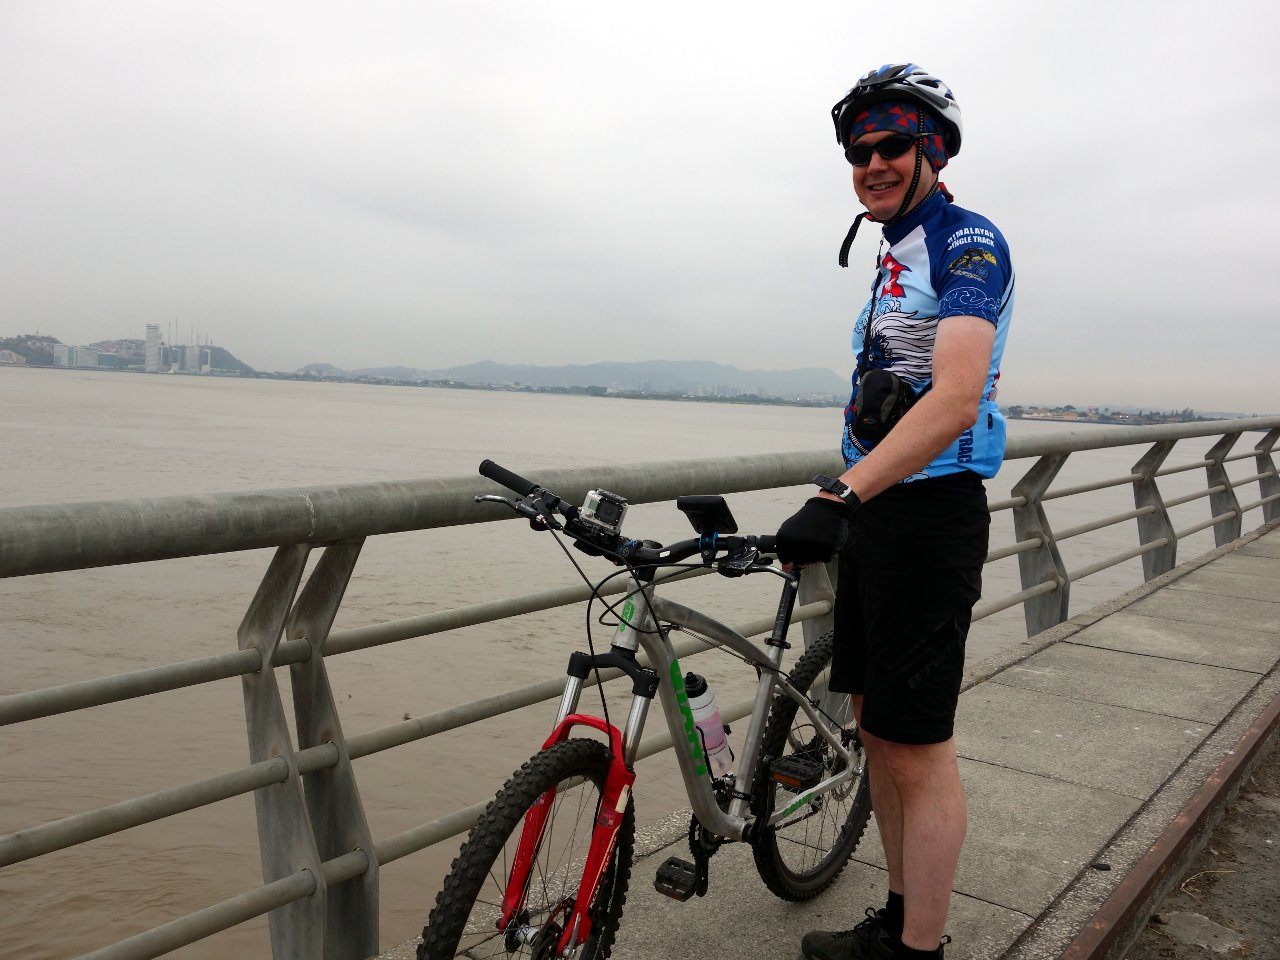 The starting point of our challenge - the Babahoyo River bridge with Guayaquil behind.